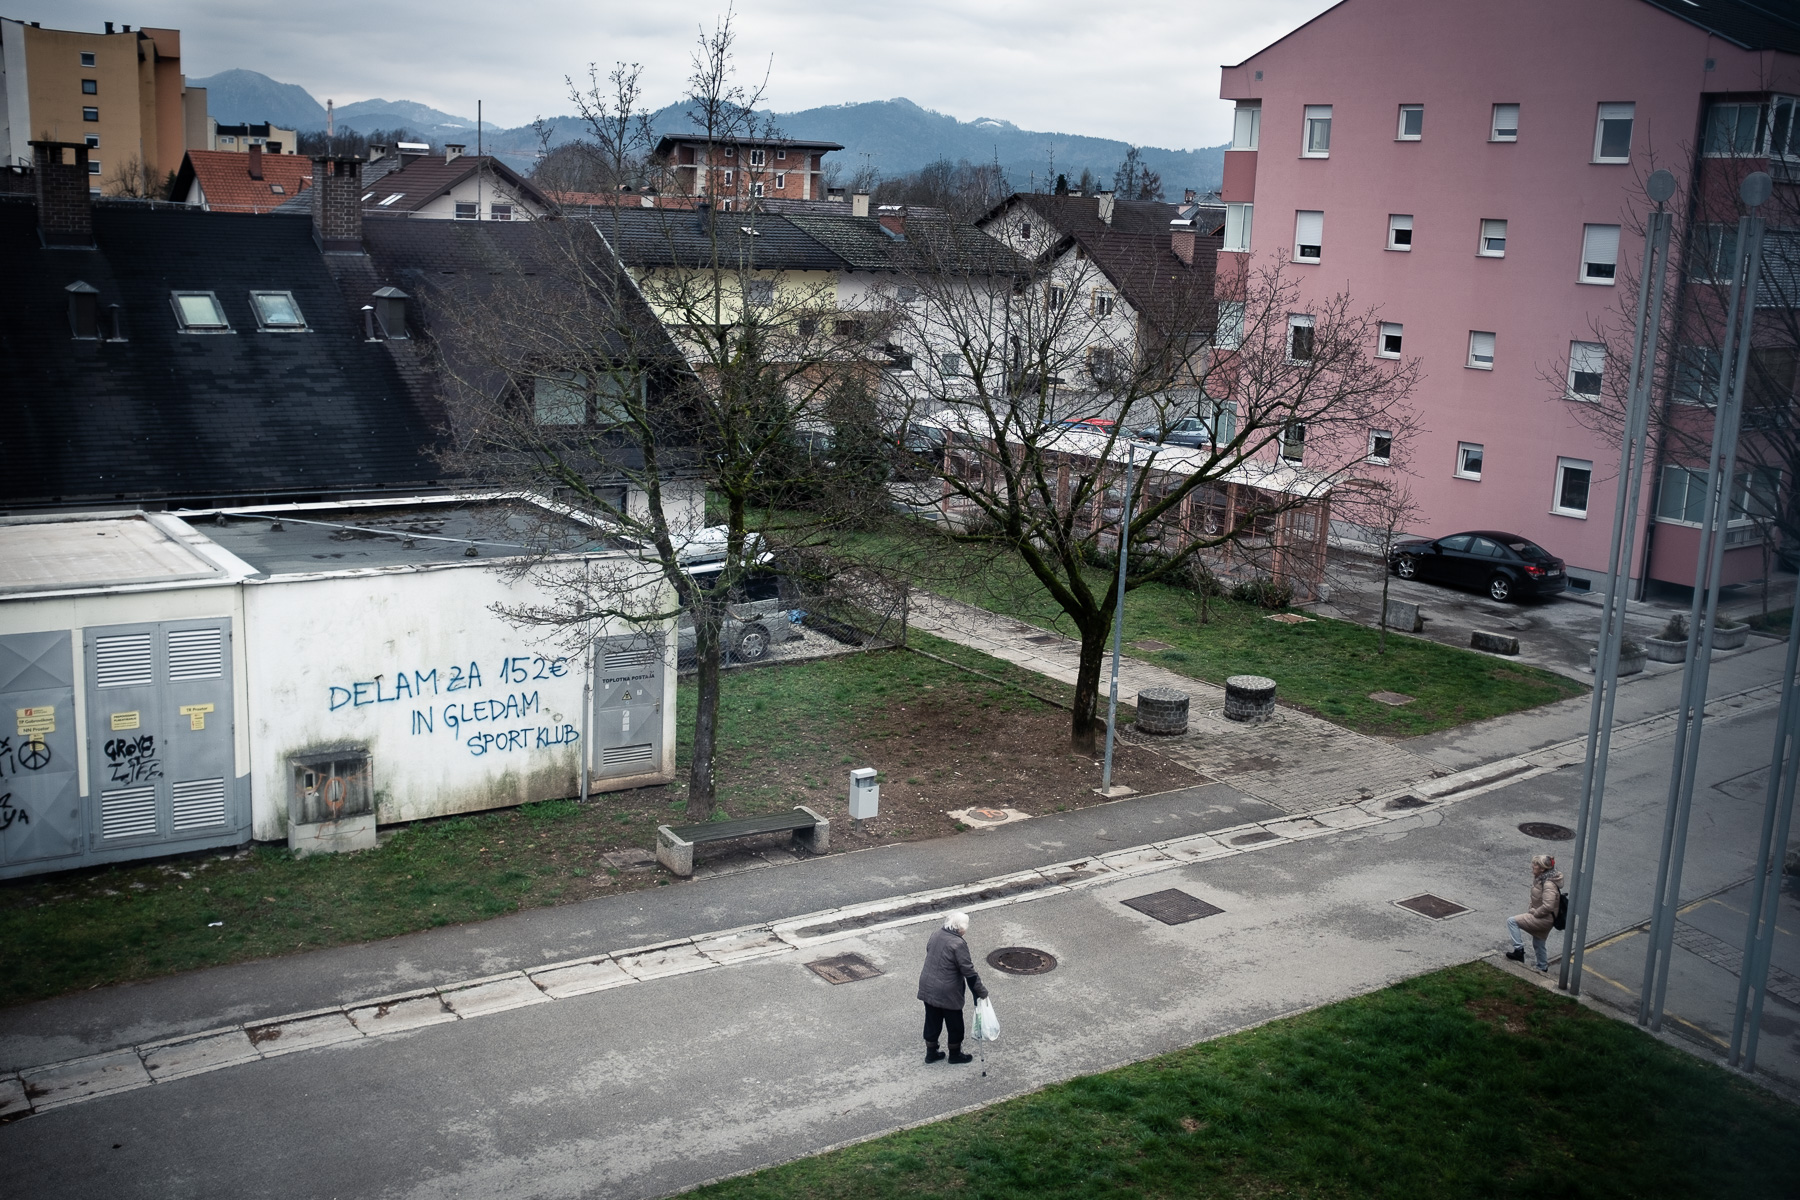 Two elderly women speak to each other on the street maintaining a large distance in accordance with social distancing rules during the coronavirus outbreak nationwide lockdown in Kranj, Slovenia, on March 22, 2020.